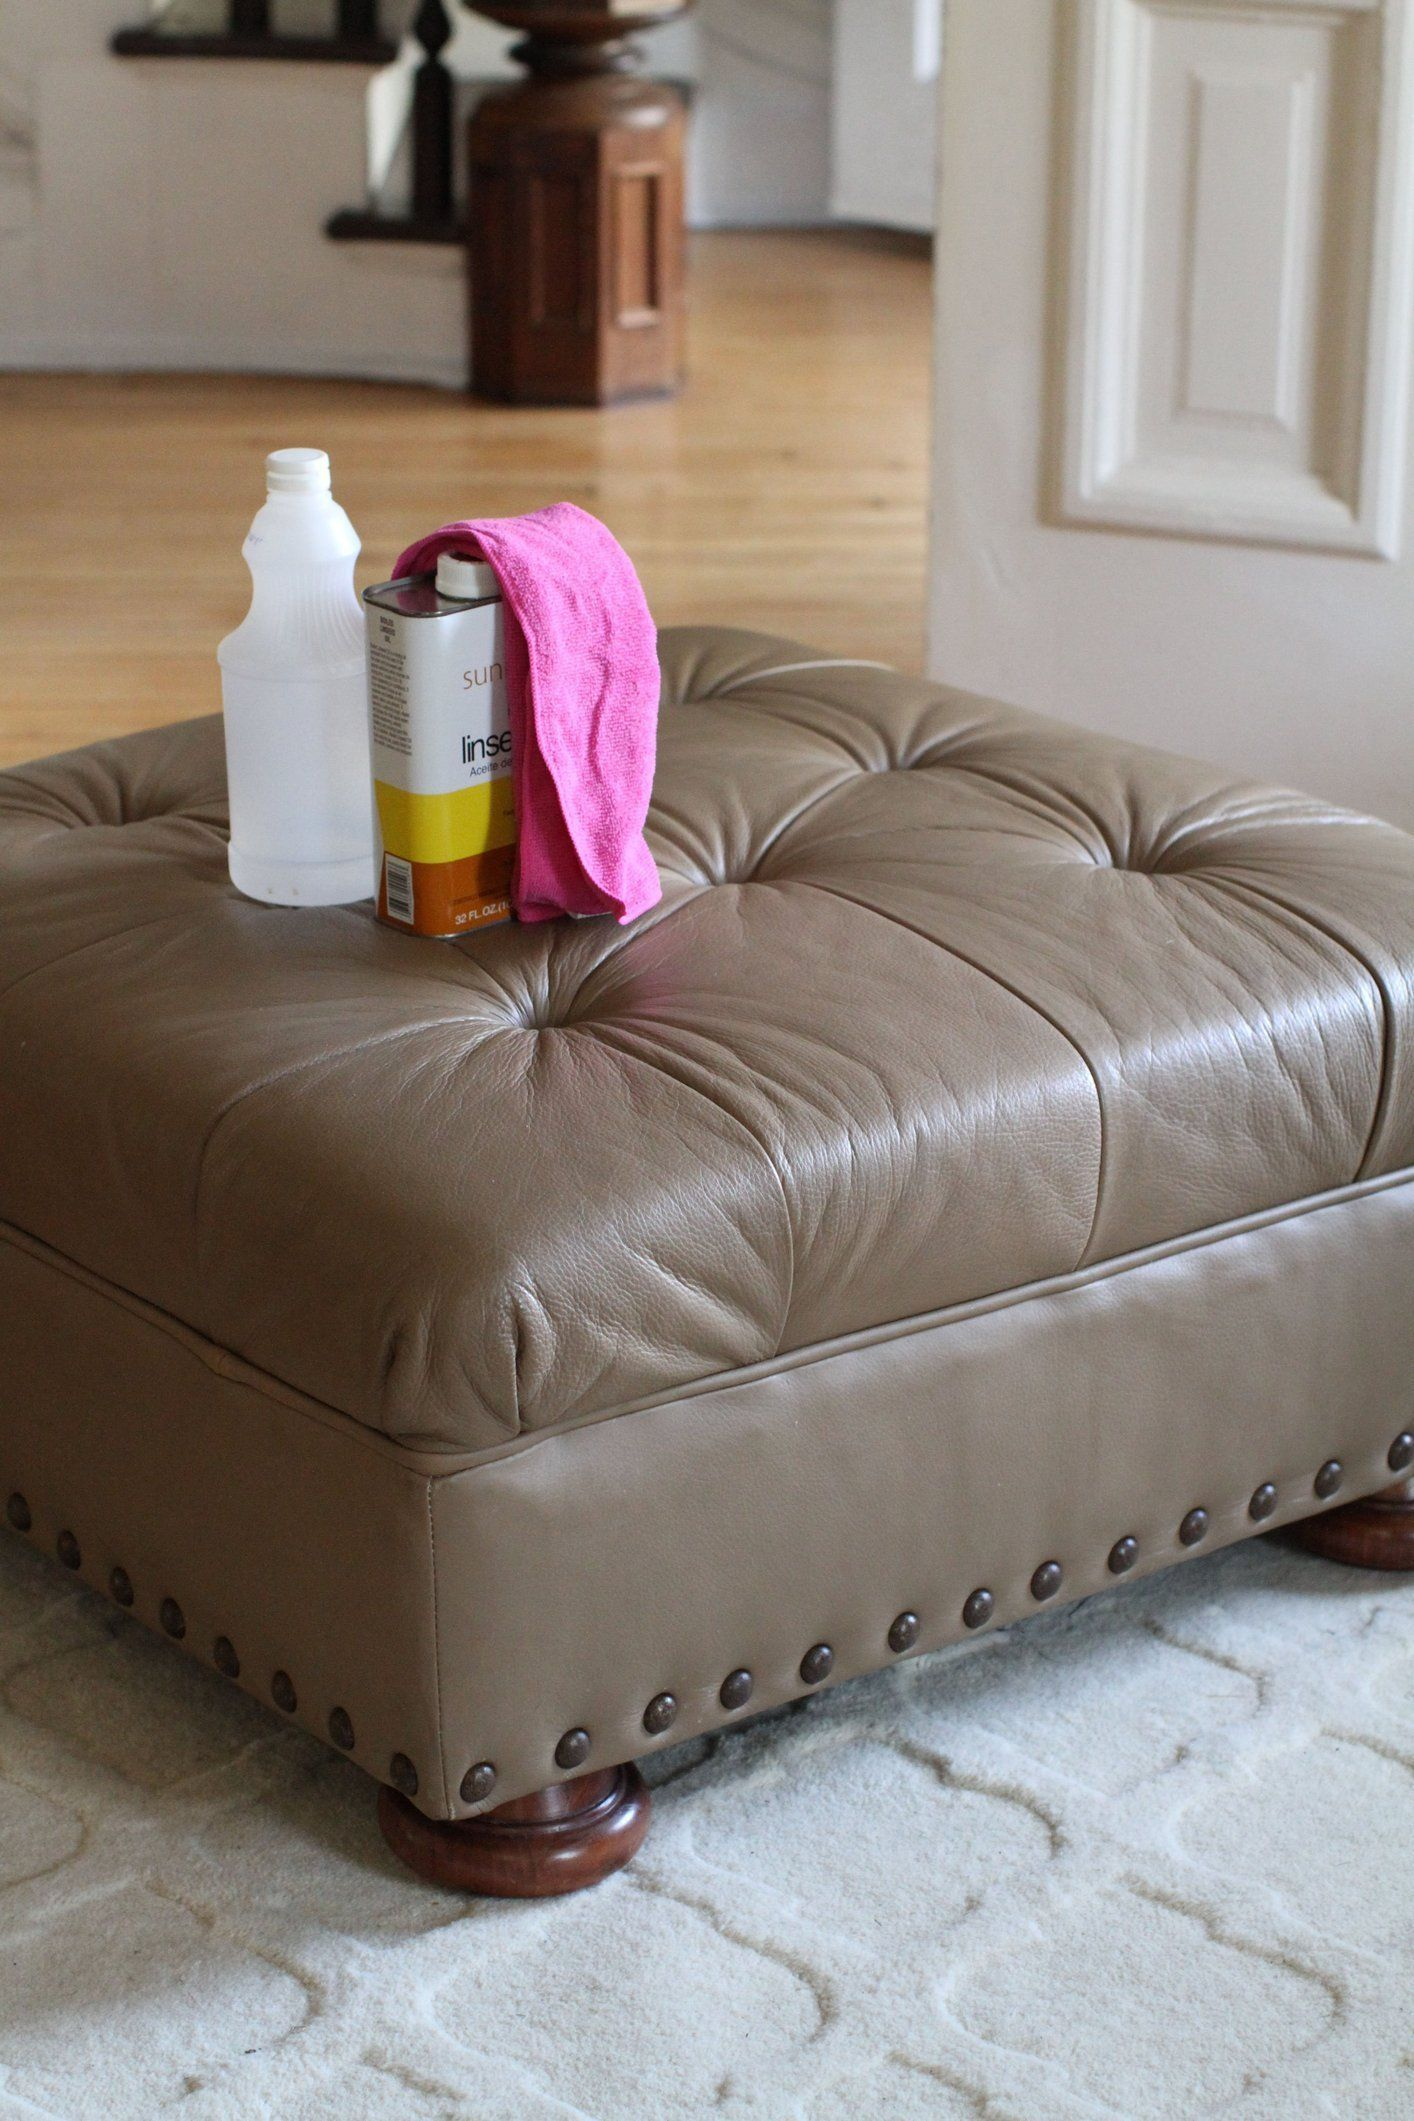 Leather Furniture Can Last For Decades If Properly Taken Care Of Prolong The Life Your Piece By Using This Simple All Natural Conditioner